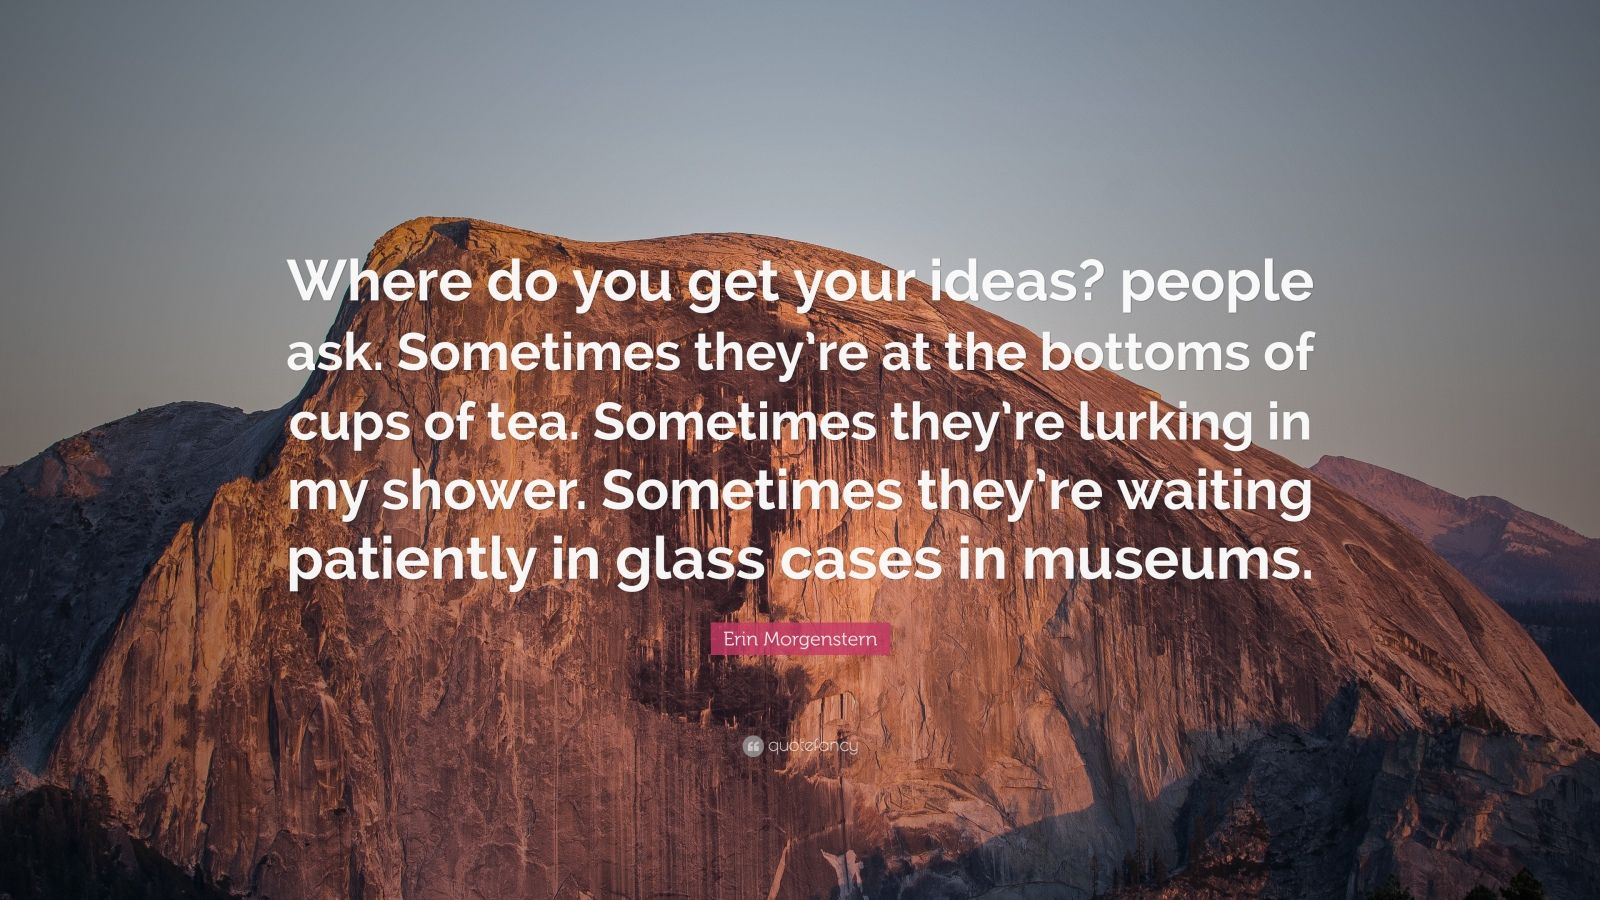 """Erin Morgenstern Quote: """"Where do you get your ideas? people ask. Sometimes they're at the bottoms of cups of tea. Sometimes they're lurking in my shower. Sometimes they're waiting patiently in glass cases in museums."""""""